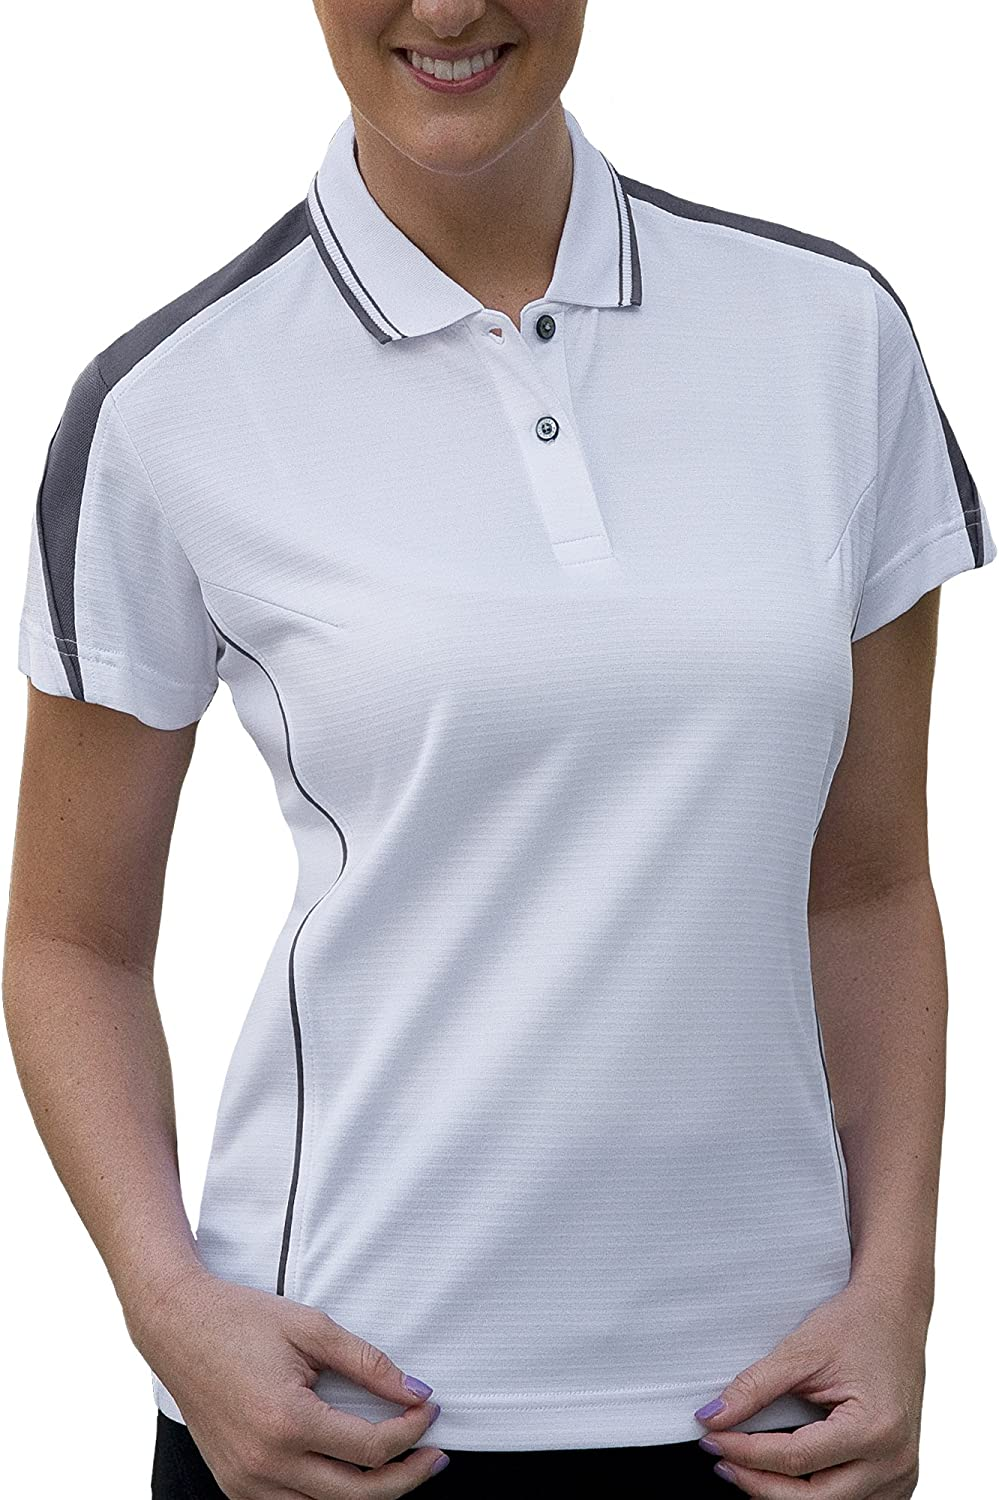 Pro Celebrity Womens Contender Polo Shirt